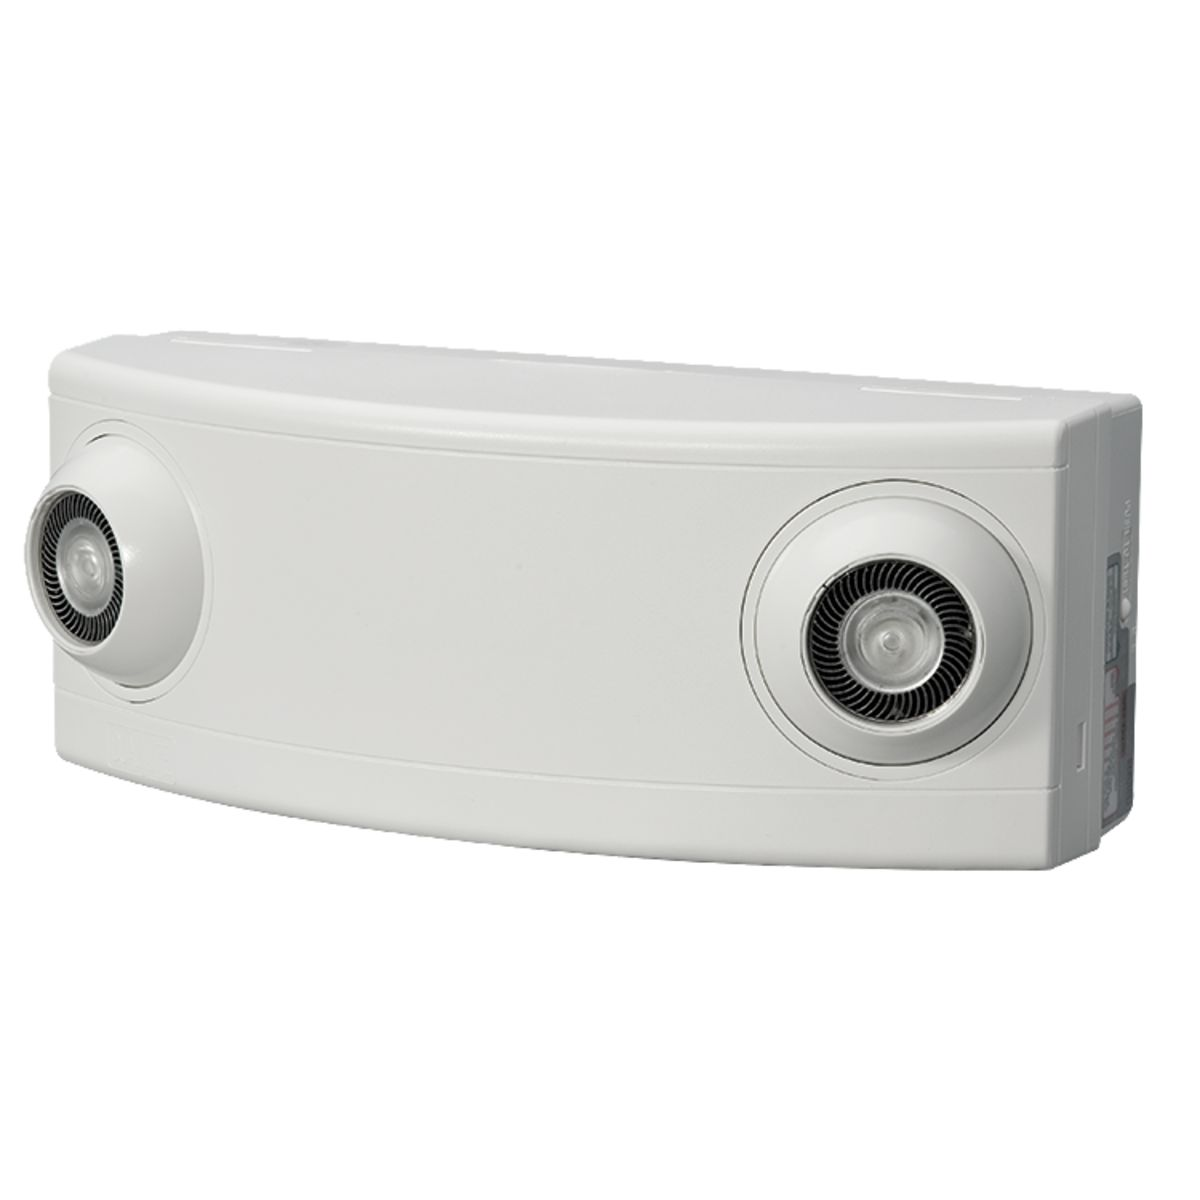 LZ Series  sc 1 st  Hubbell & Emergency Lighting Units | Emergency u0026 Exit Lighting | Lighting ...